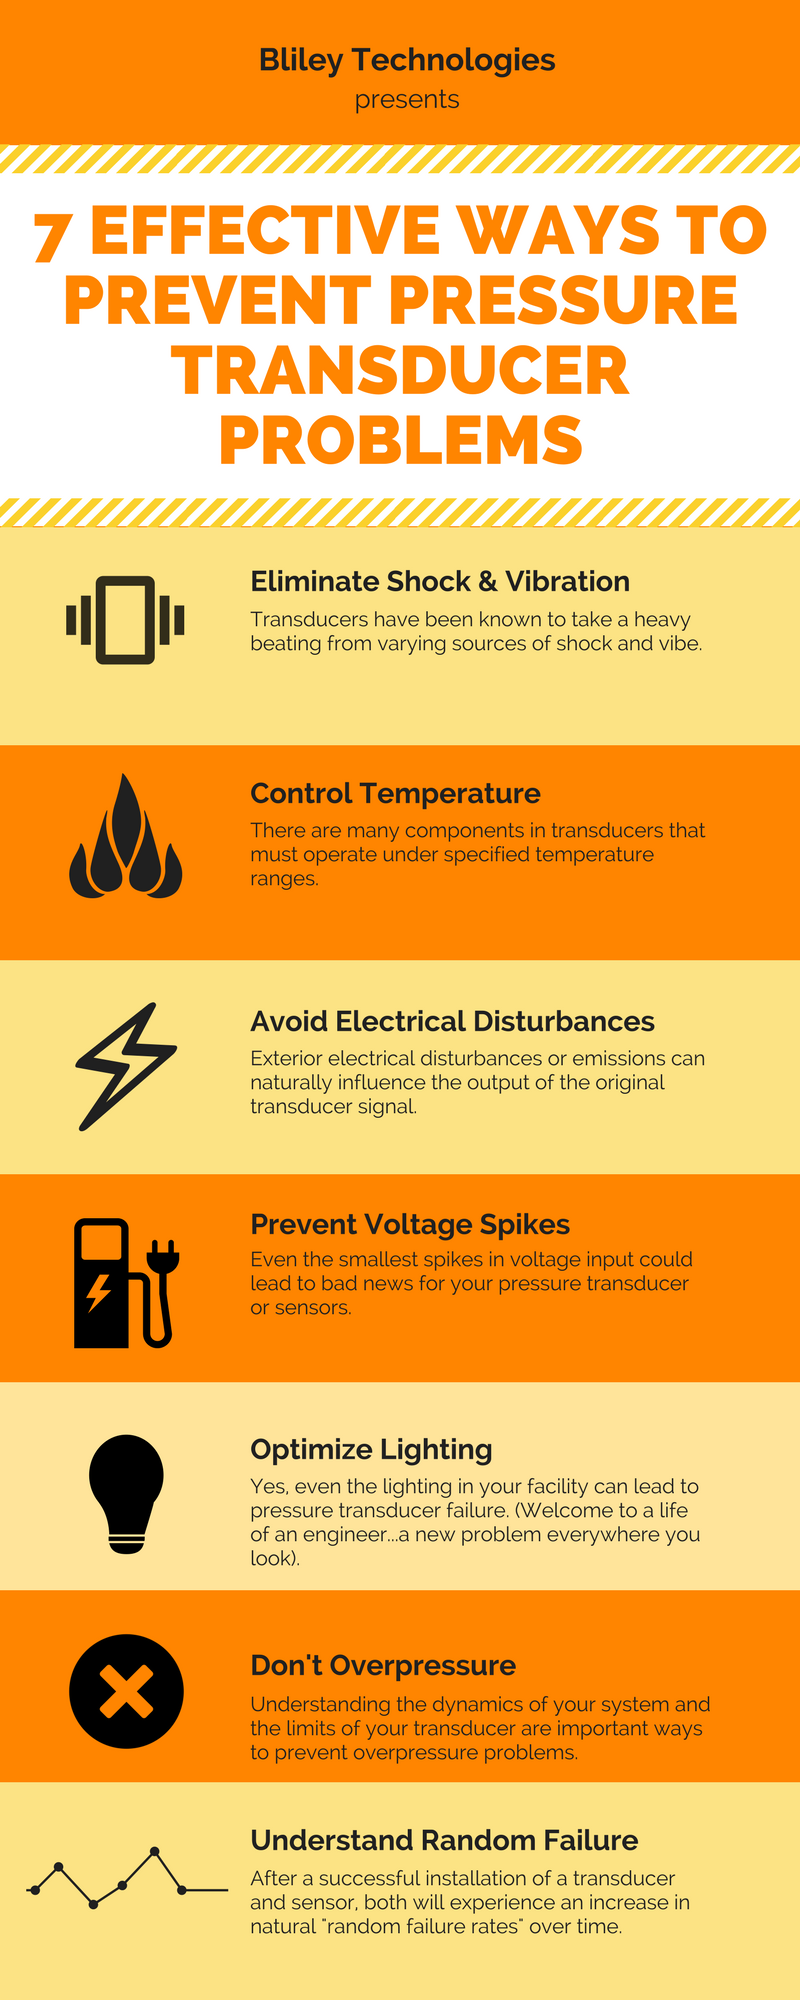 common ways prevent Pressure Transducer problems and failure infographic bliley technologies electronics